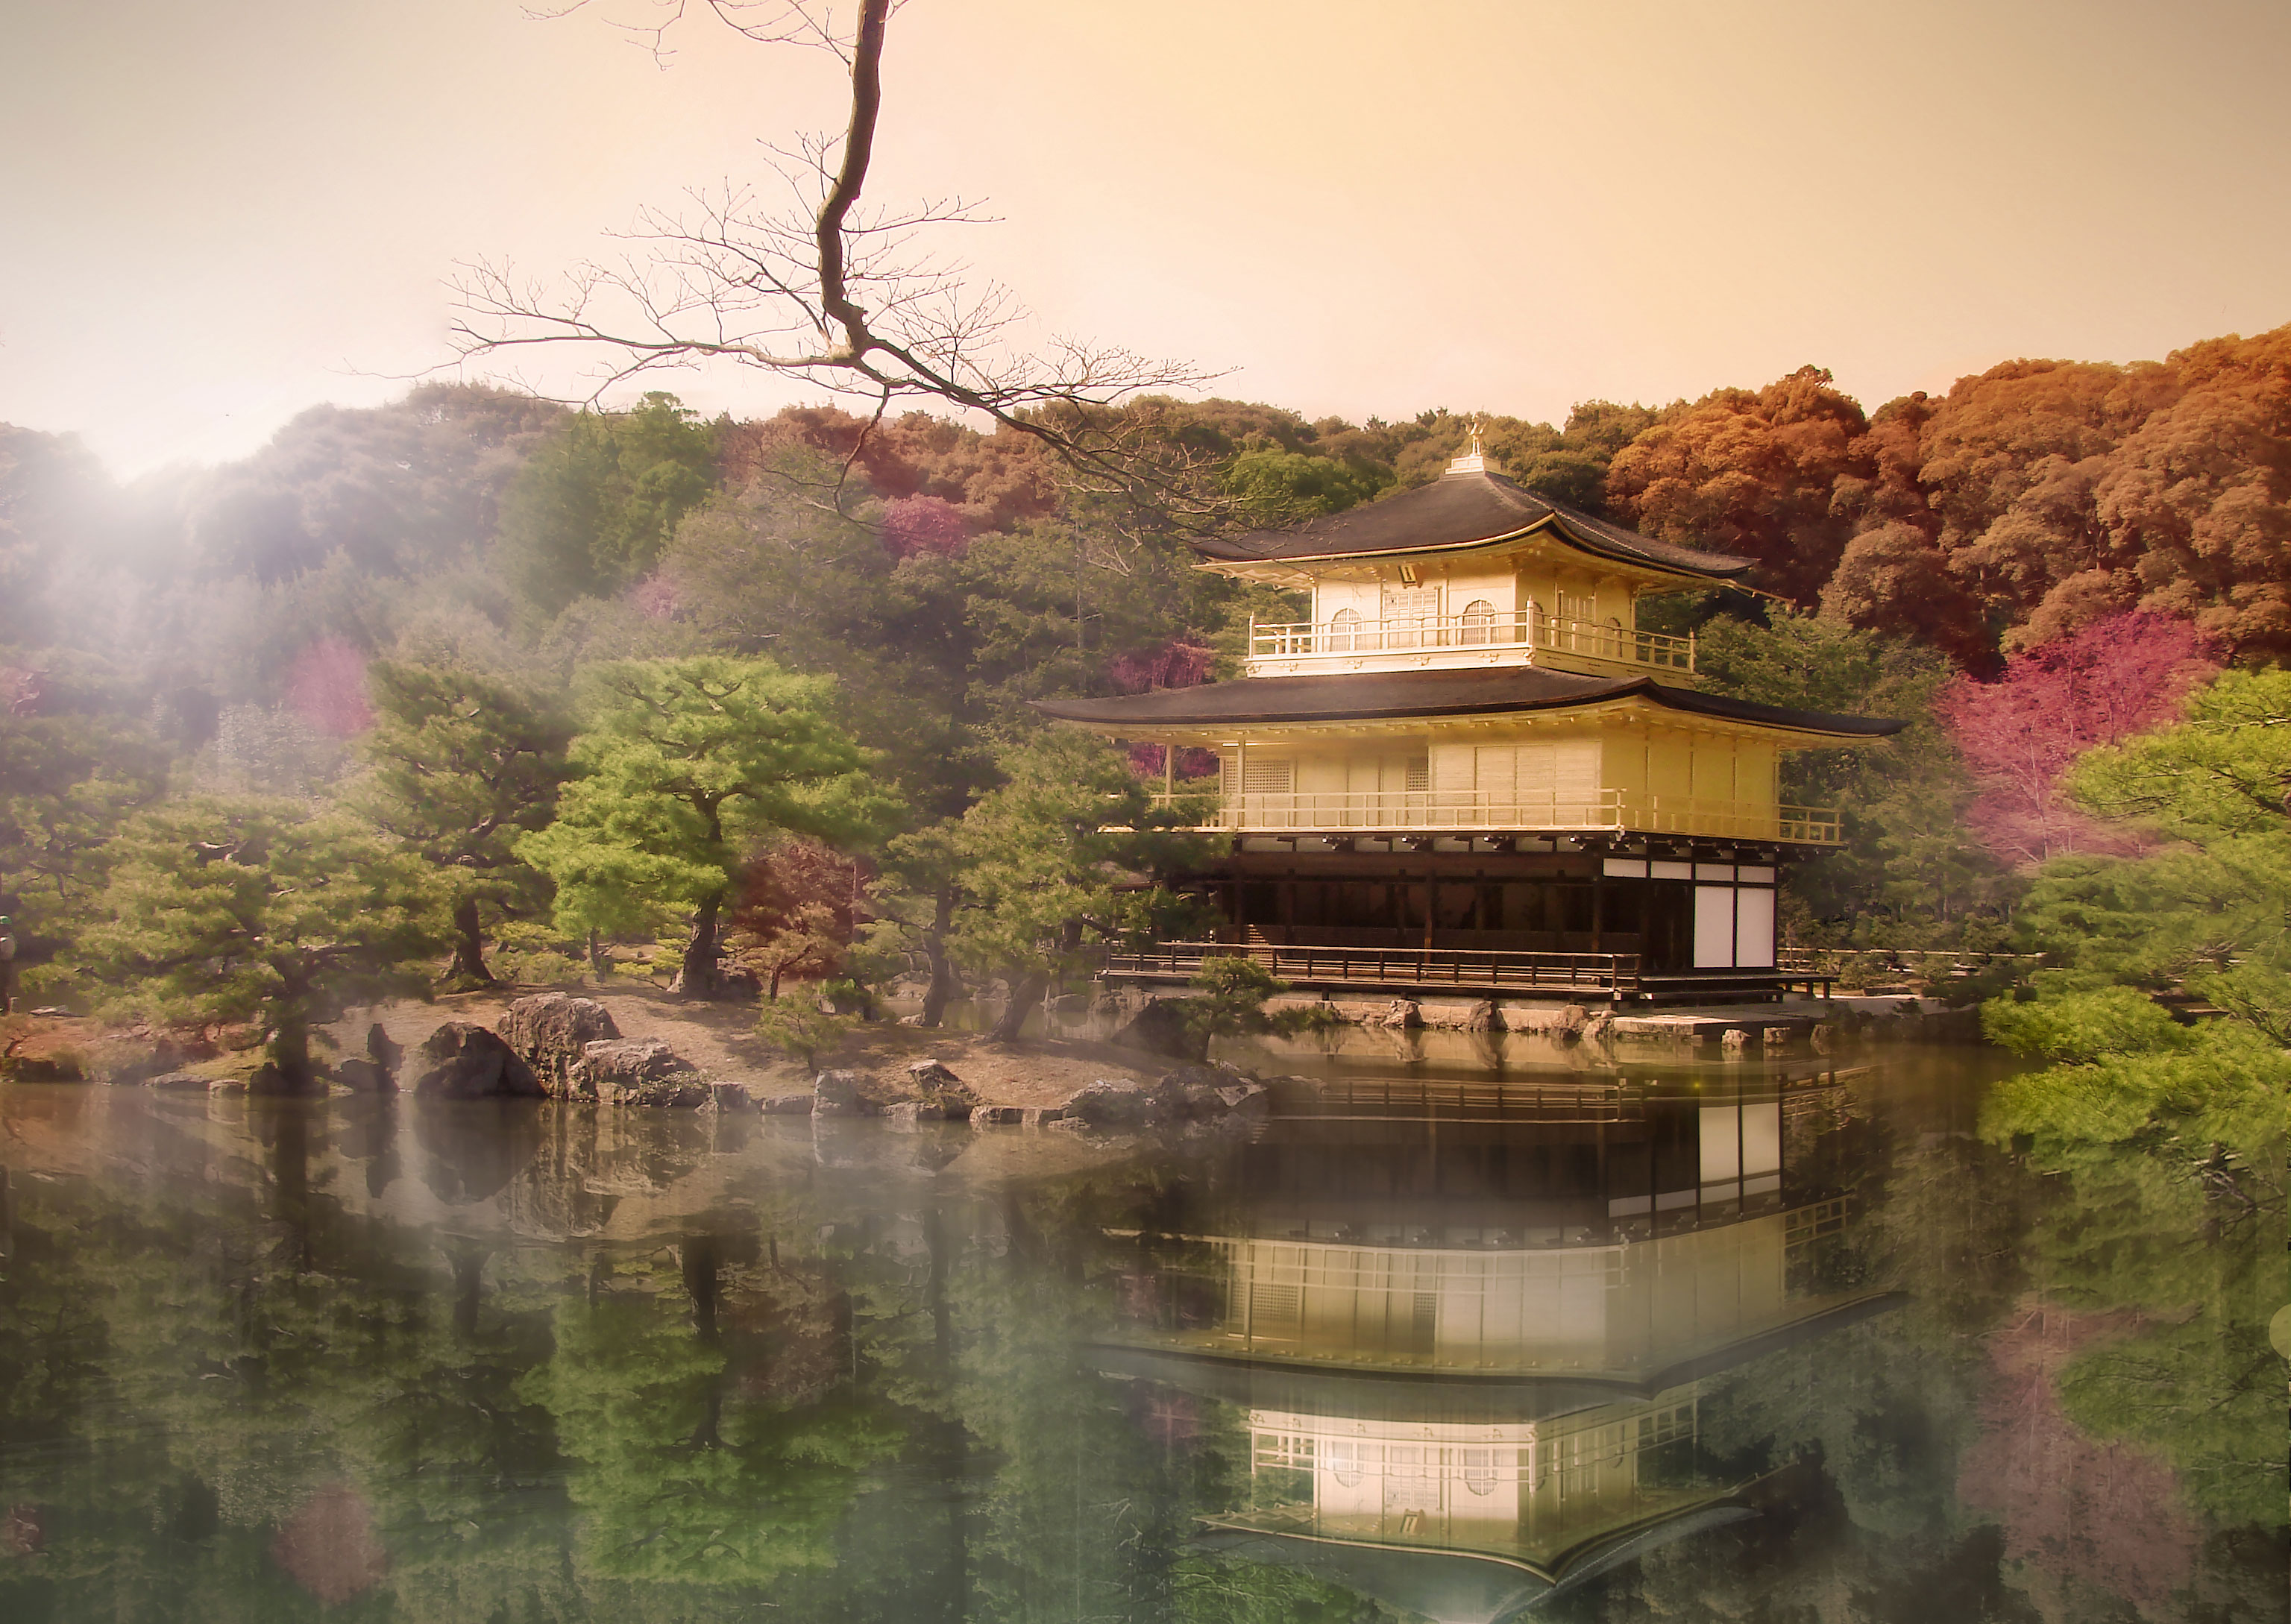 The Golden Pavilion of Kyoto or the Deer Garden Temple of Kyoto by sunset and nice color of the nature around, (Nos Dren)